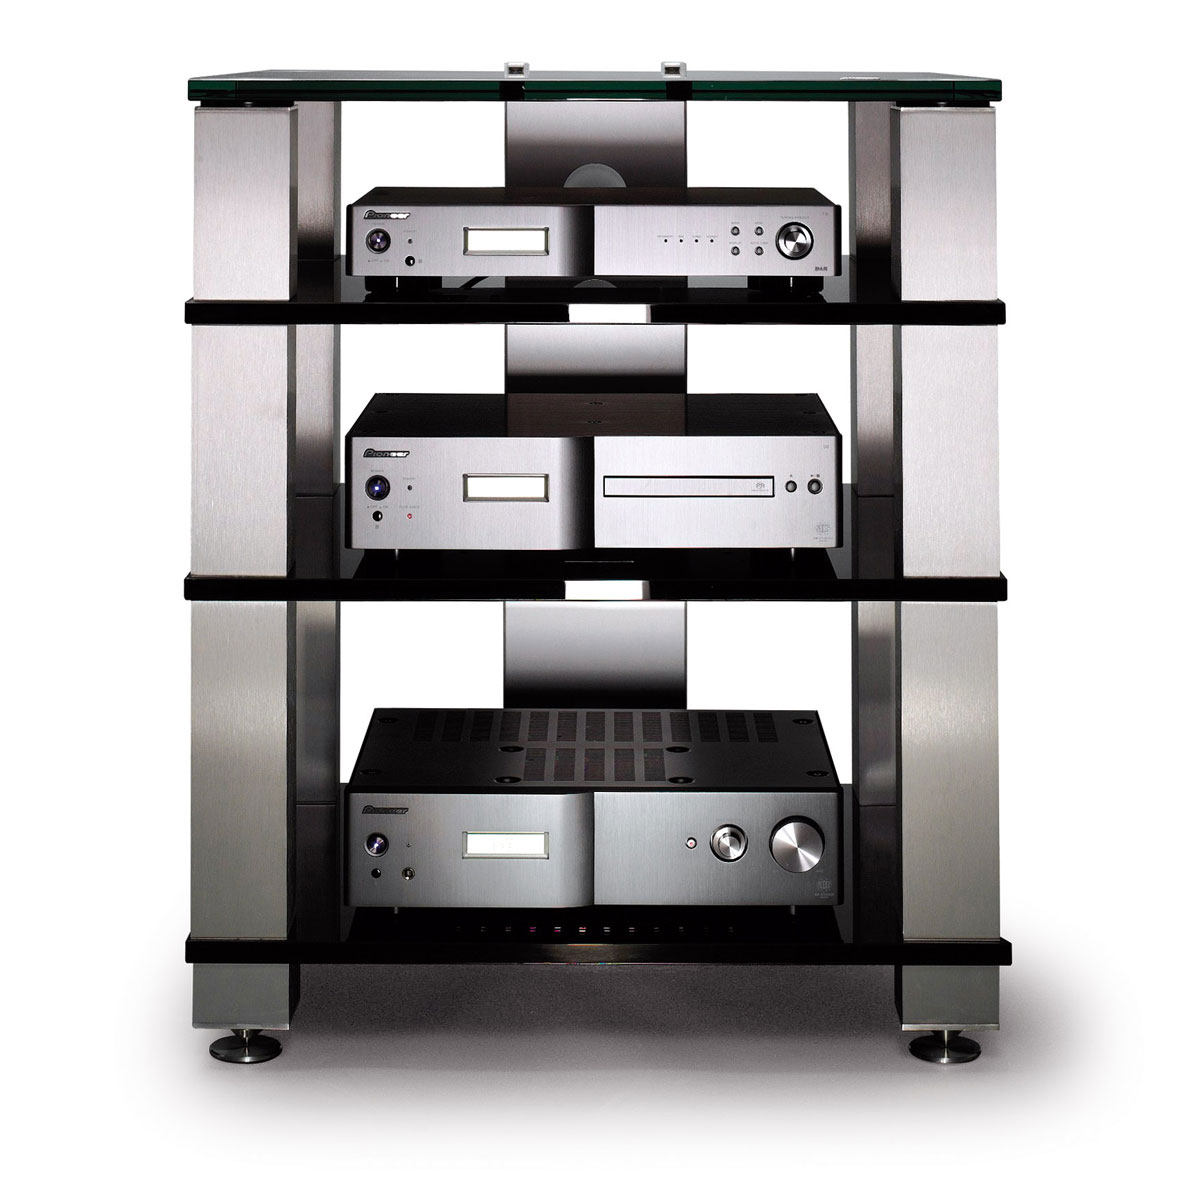 spectral high end he682 he683 he684 hifi rack bei hifi. Black Bedroom Furniture Sets. Home Design Ideas